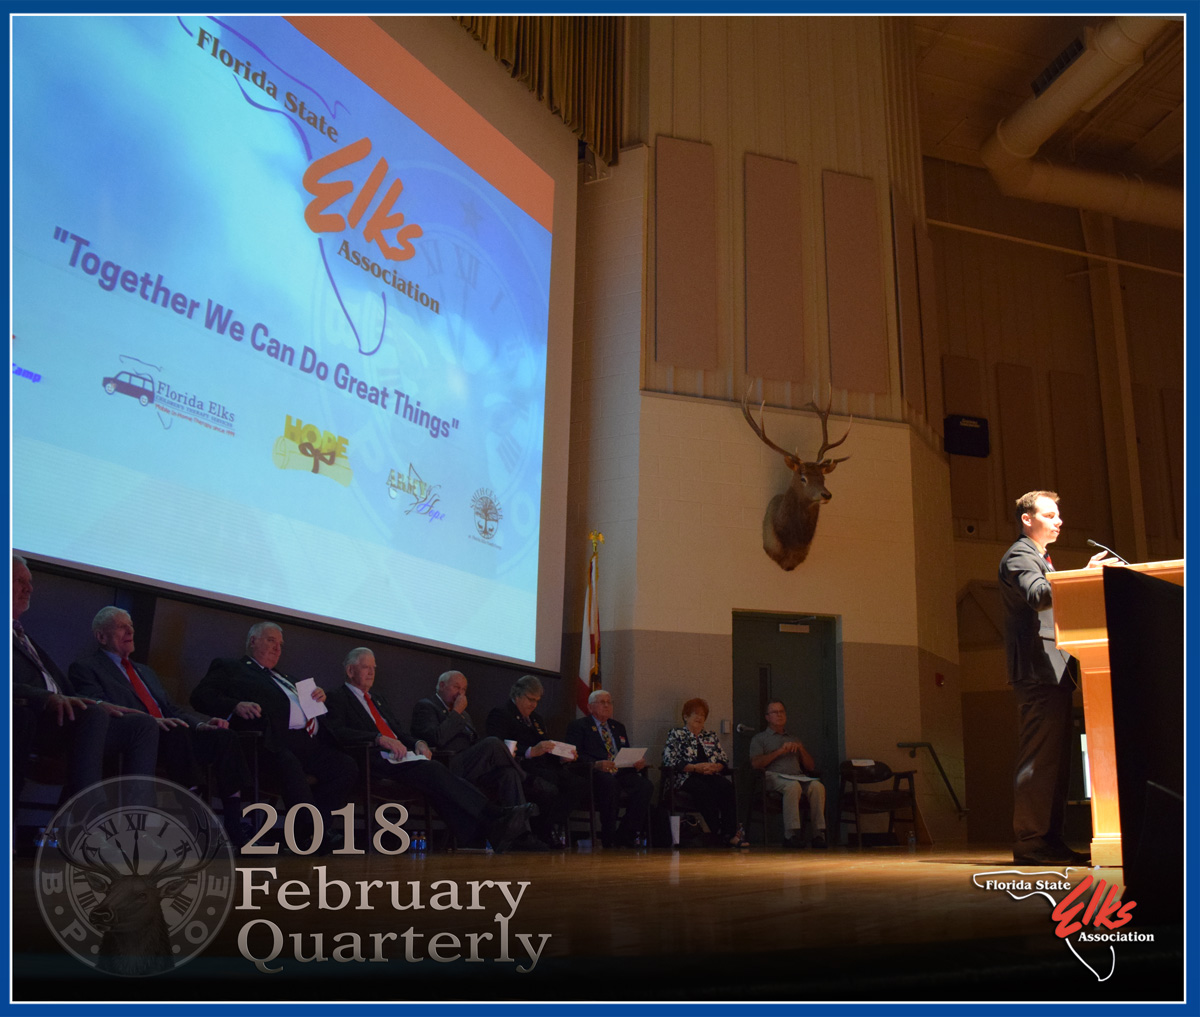 Florida Elks February Quarterly